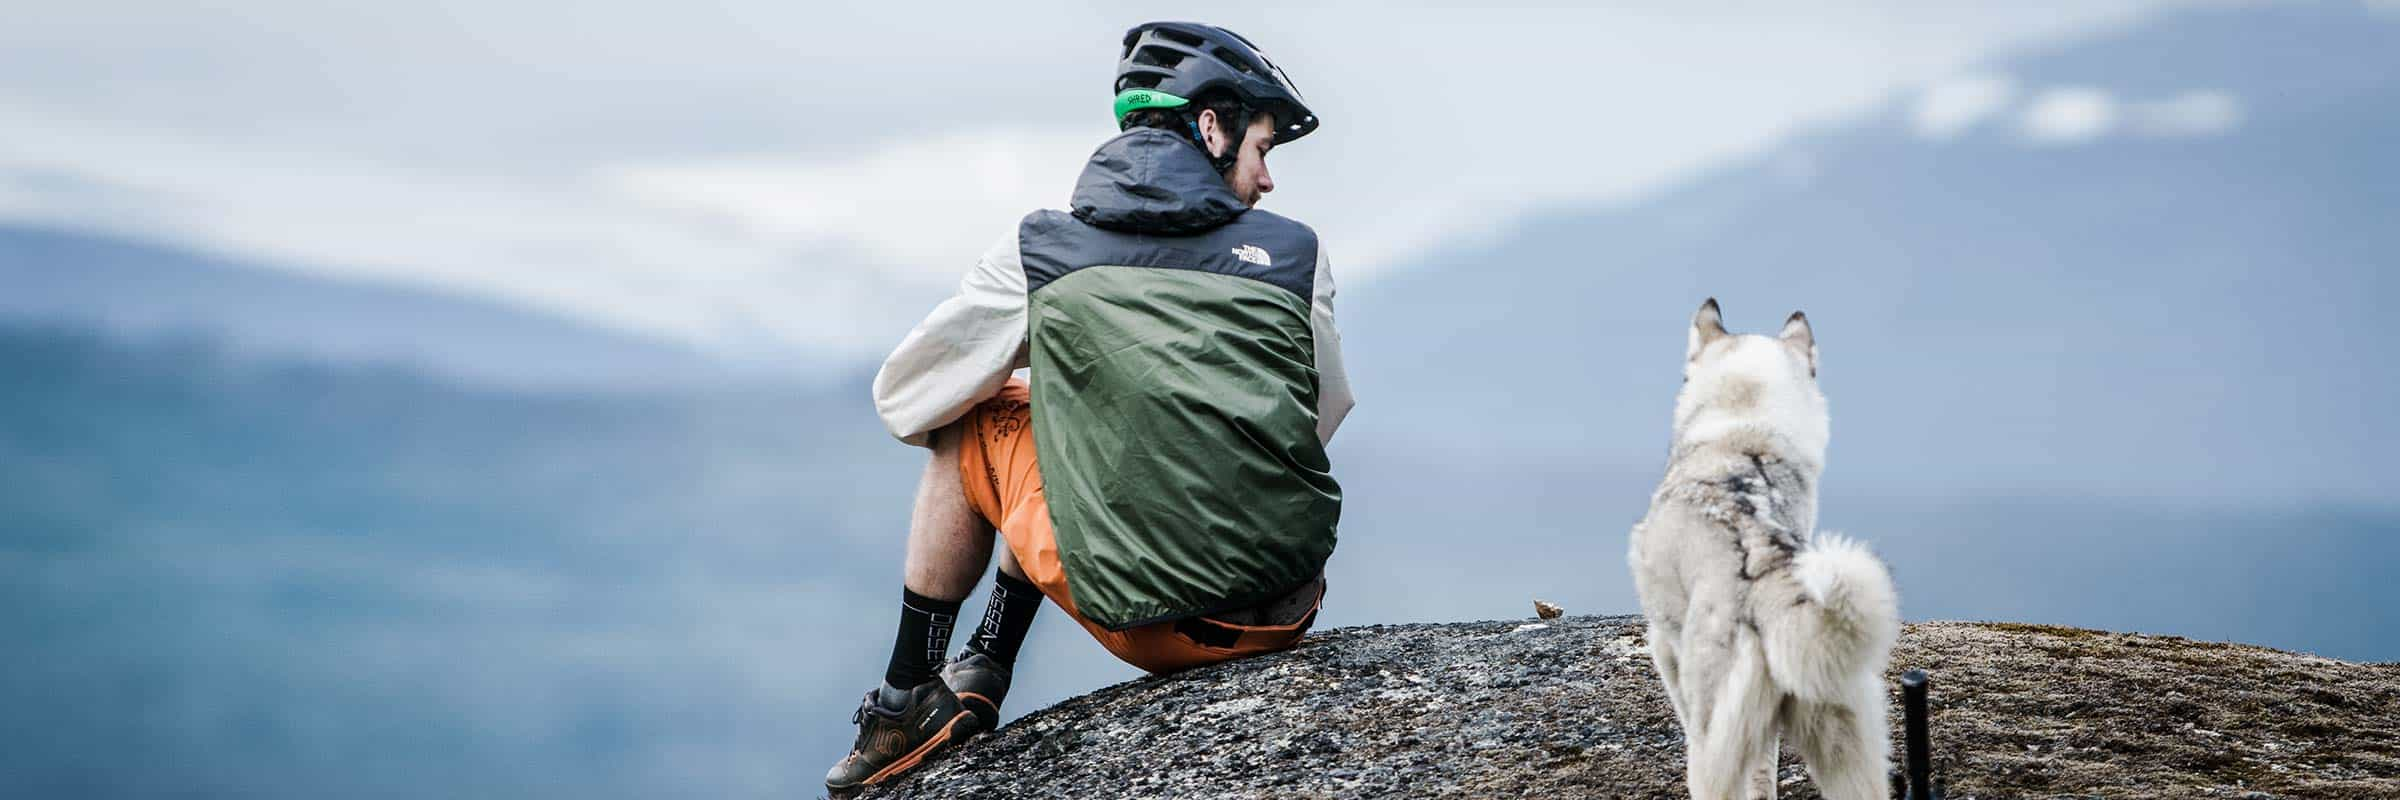 The North Face. The North Face Men's Fanorak Reviewed